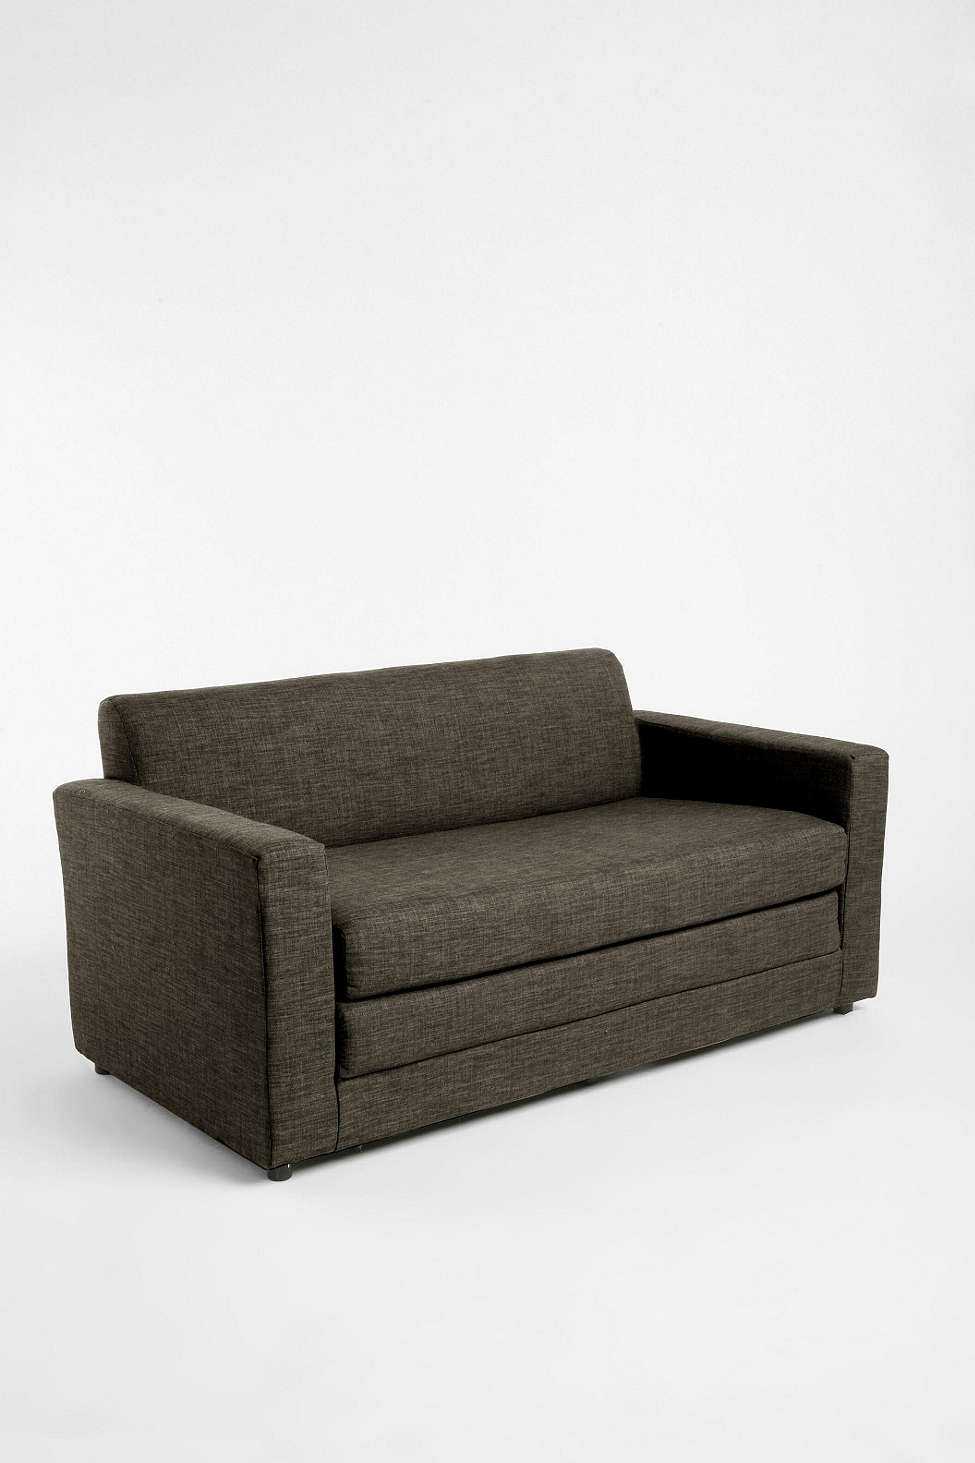 Anywhere Convertible Sofa 399 25798620 003 B